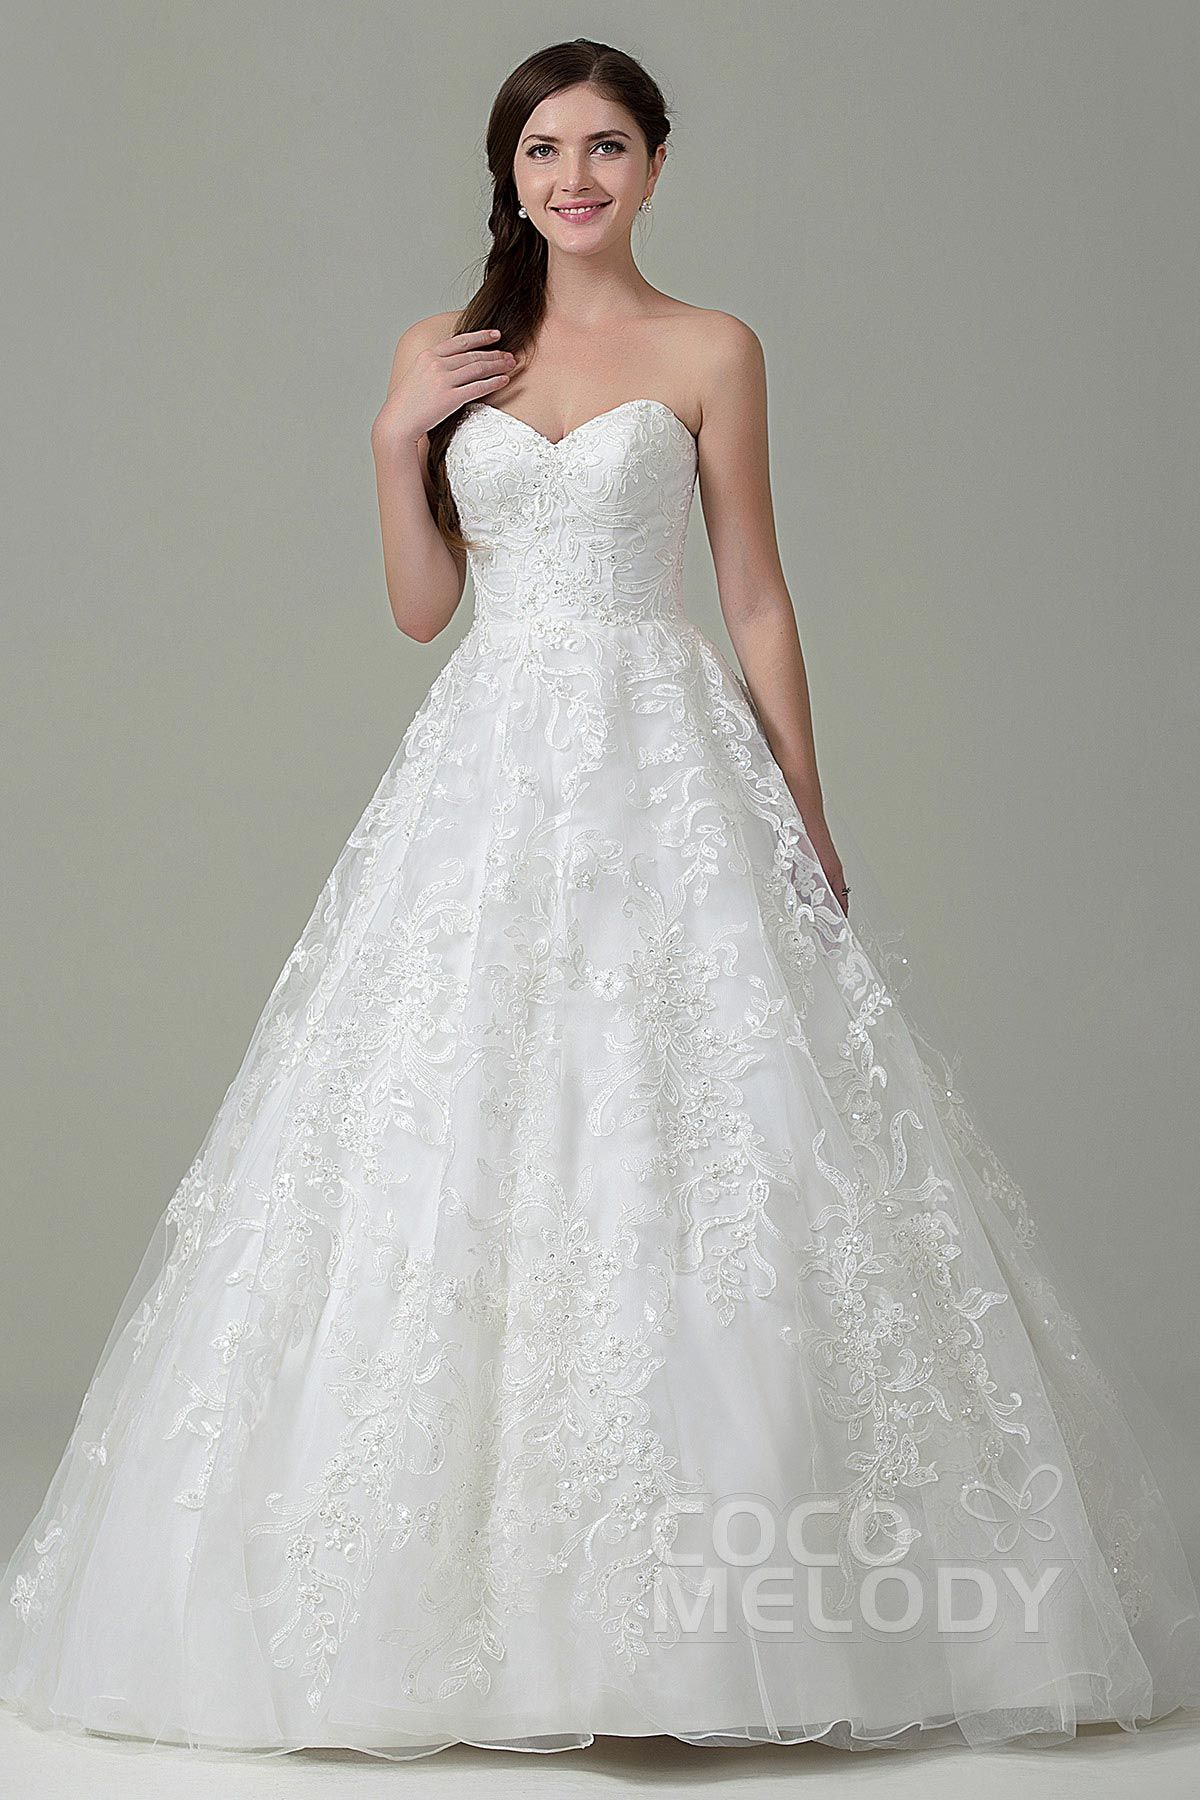 Pretty A-Line Sweetheart Natural Court Train Tulle and Lace Ivory Sleeveless Zipper With Buttons Wedding Dress with Appliques and Beading CWXT15017